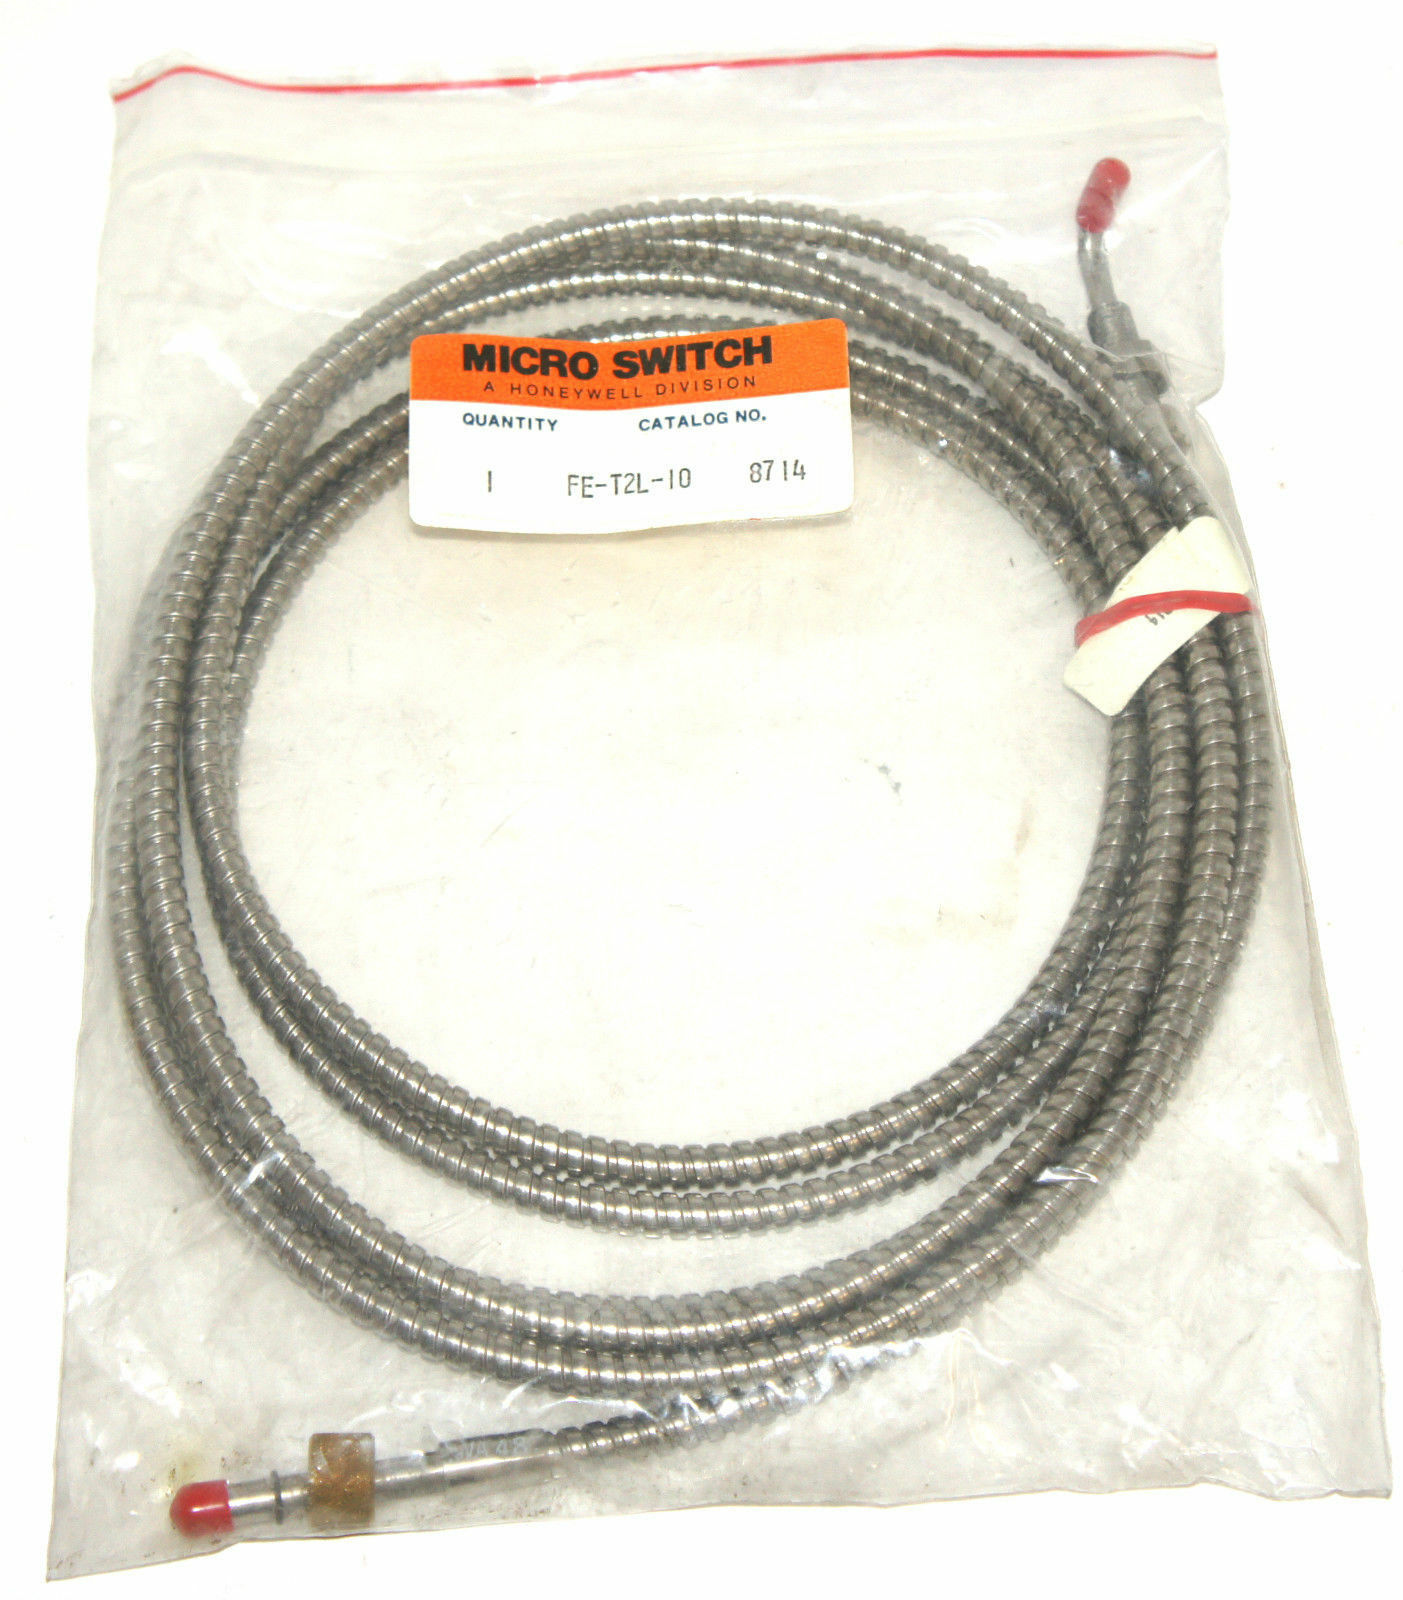 Honeywell Micro Switch Fe-t2l-10 Fiber Optic Cable FET2L10 | eBay